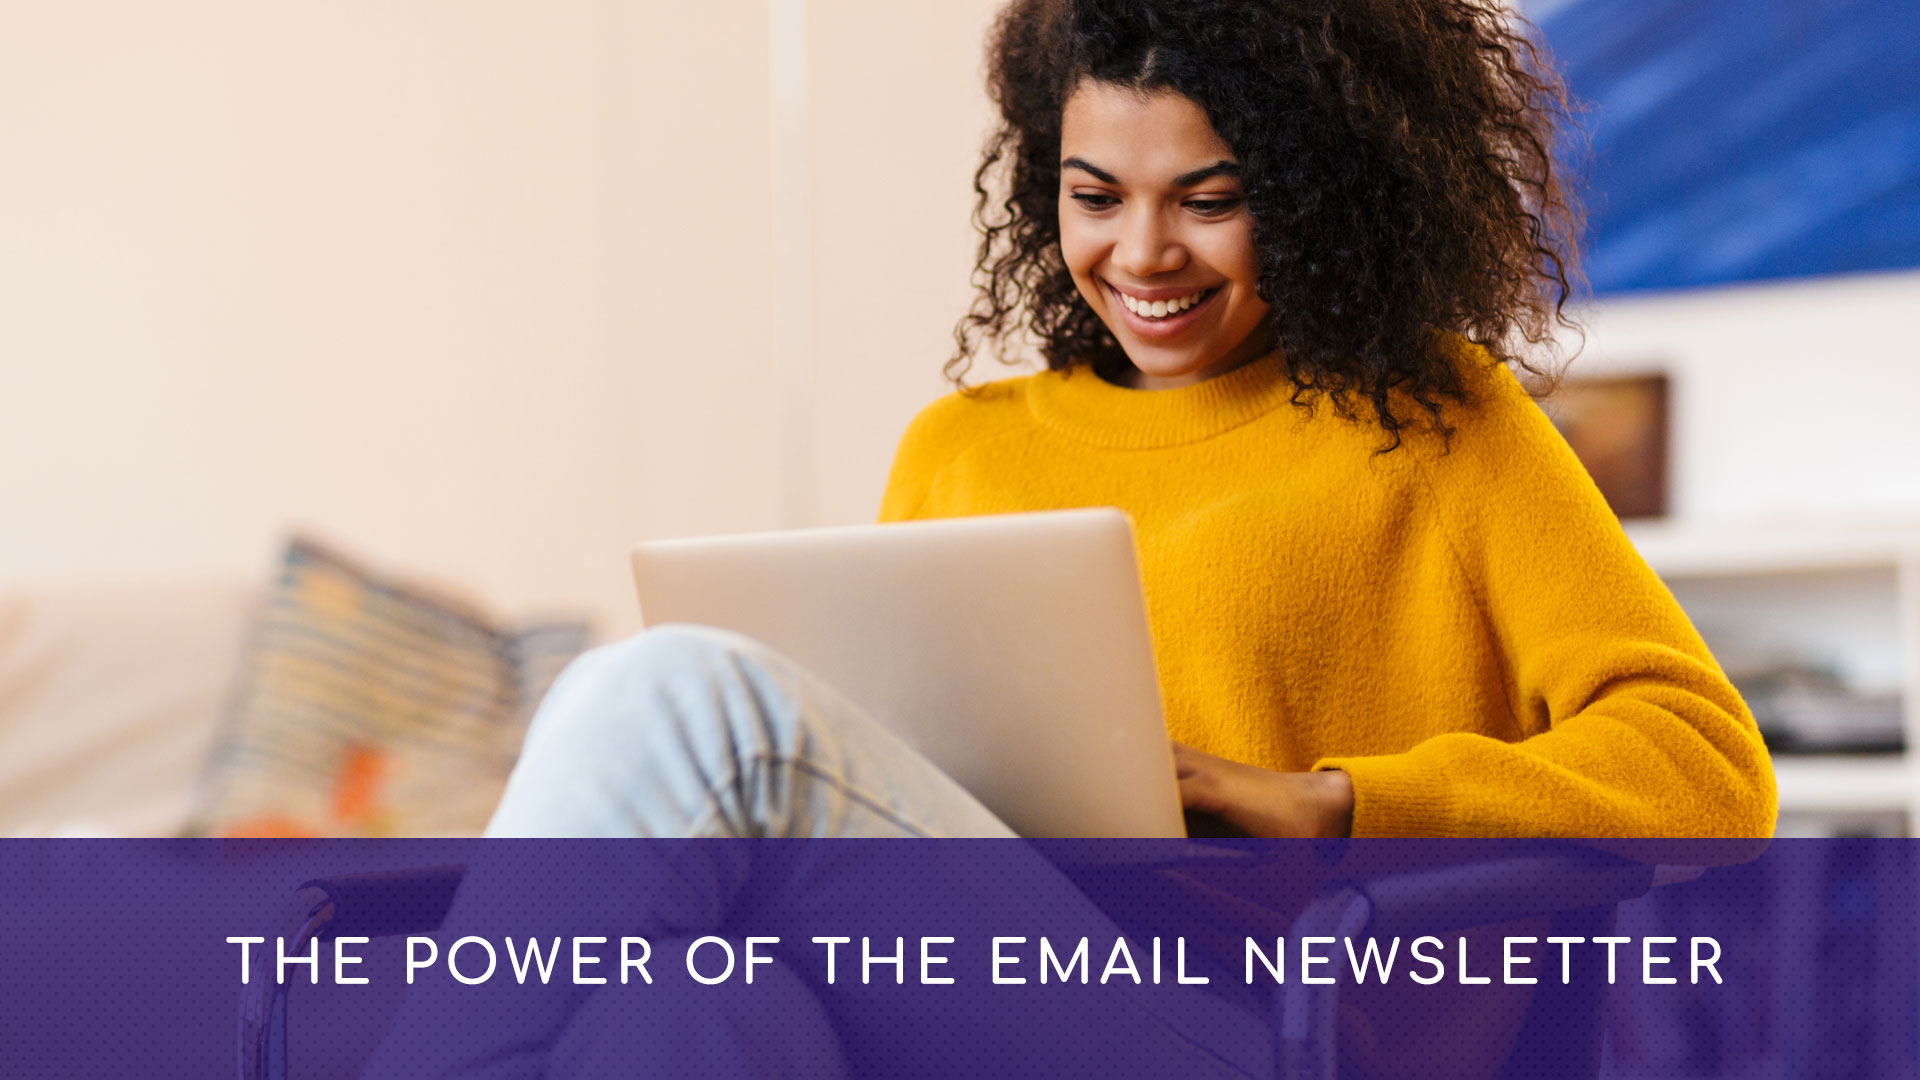 The Power Of The Email Newsletter